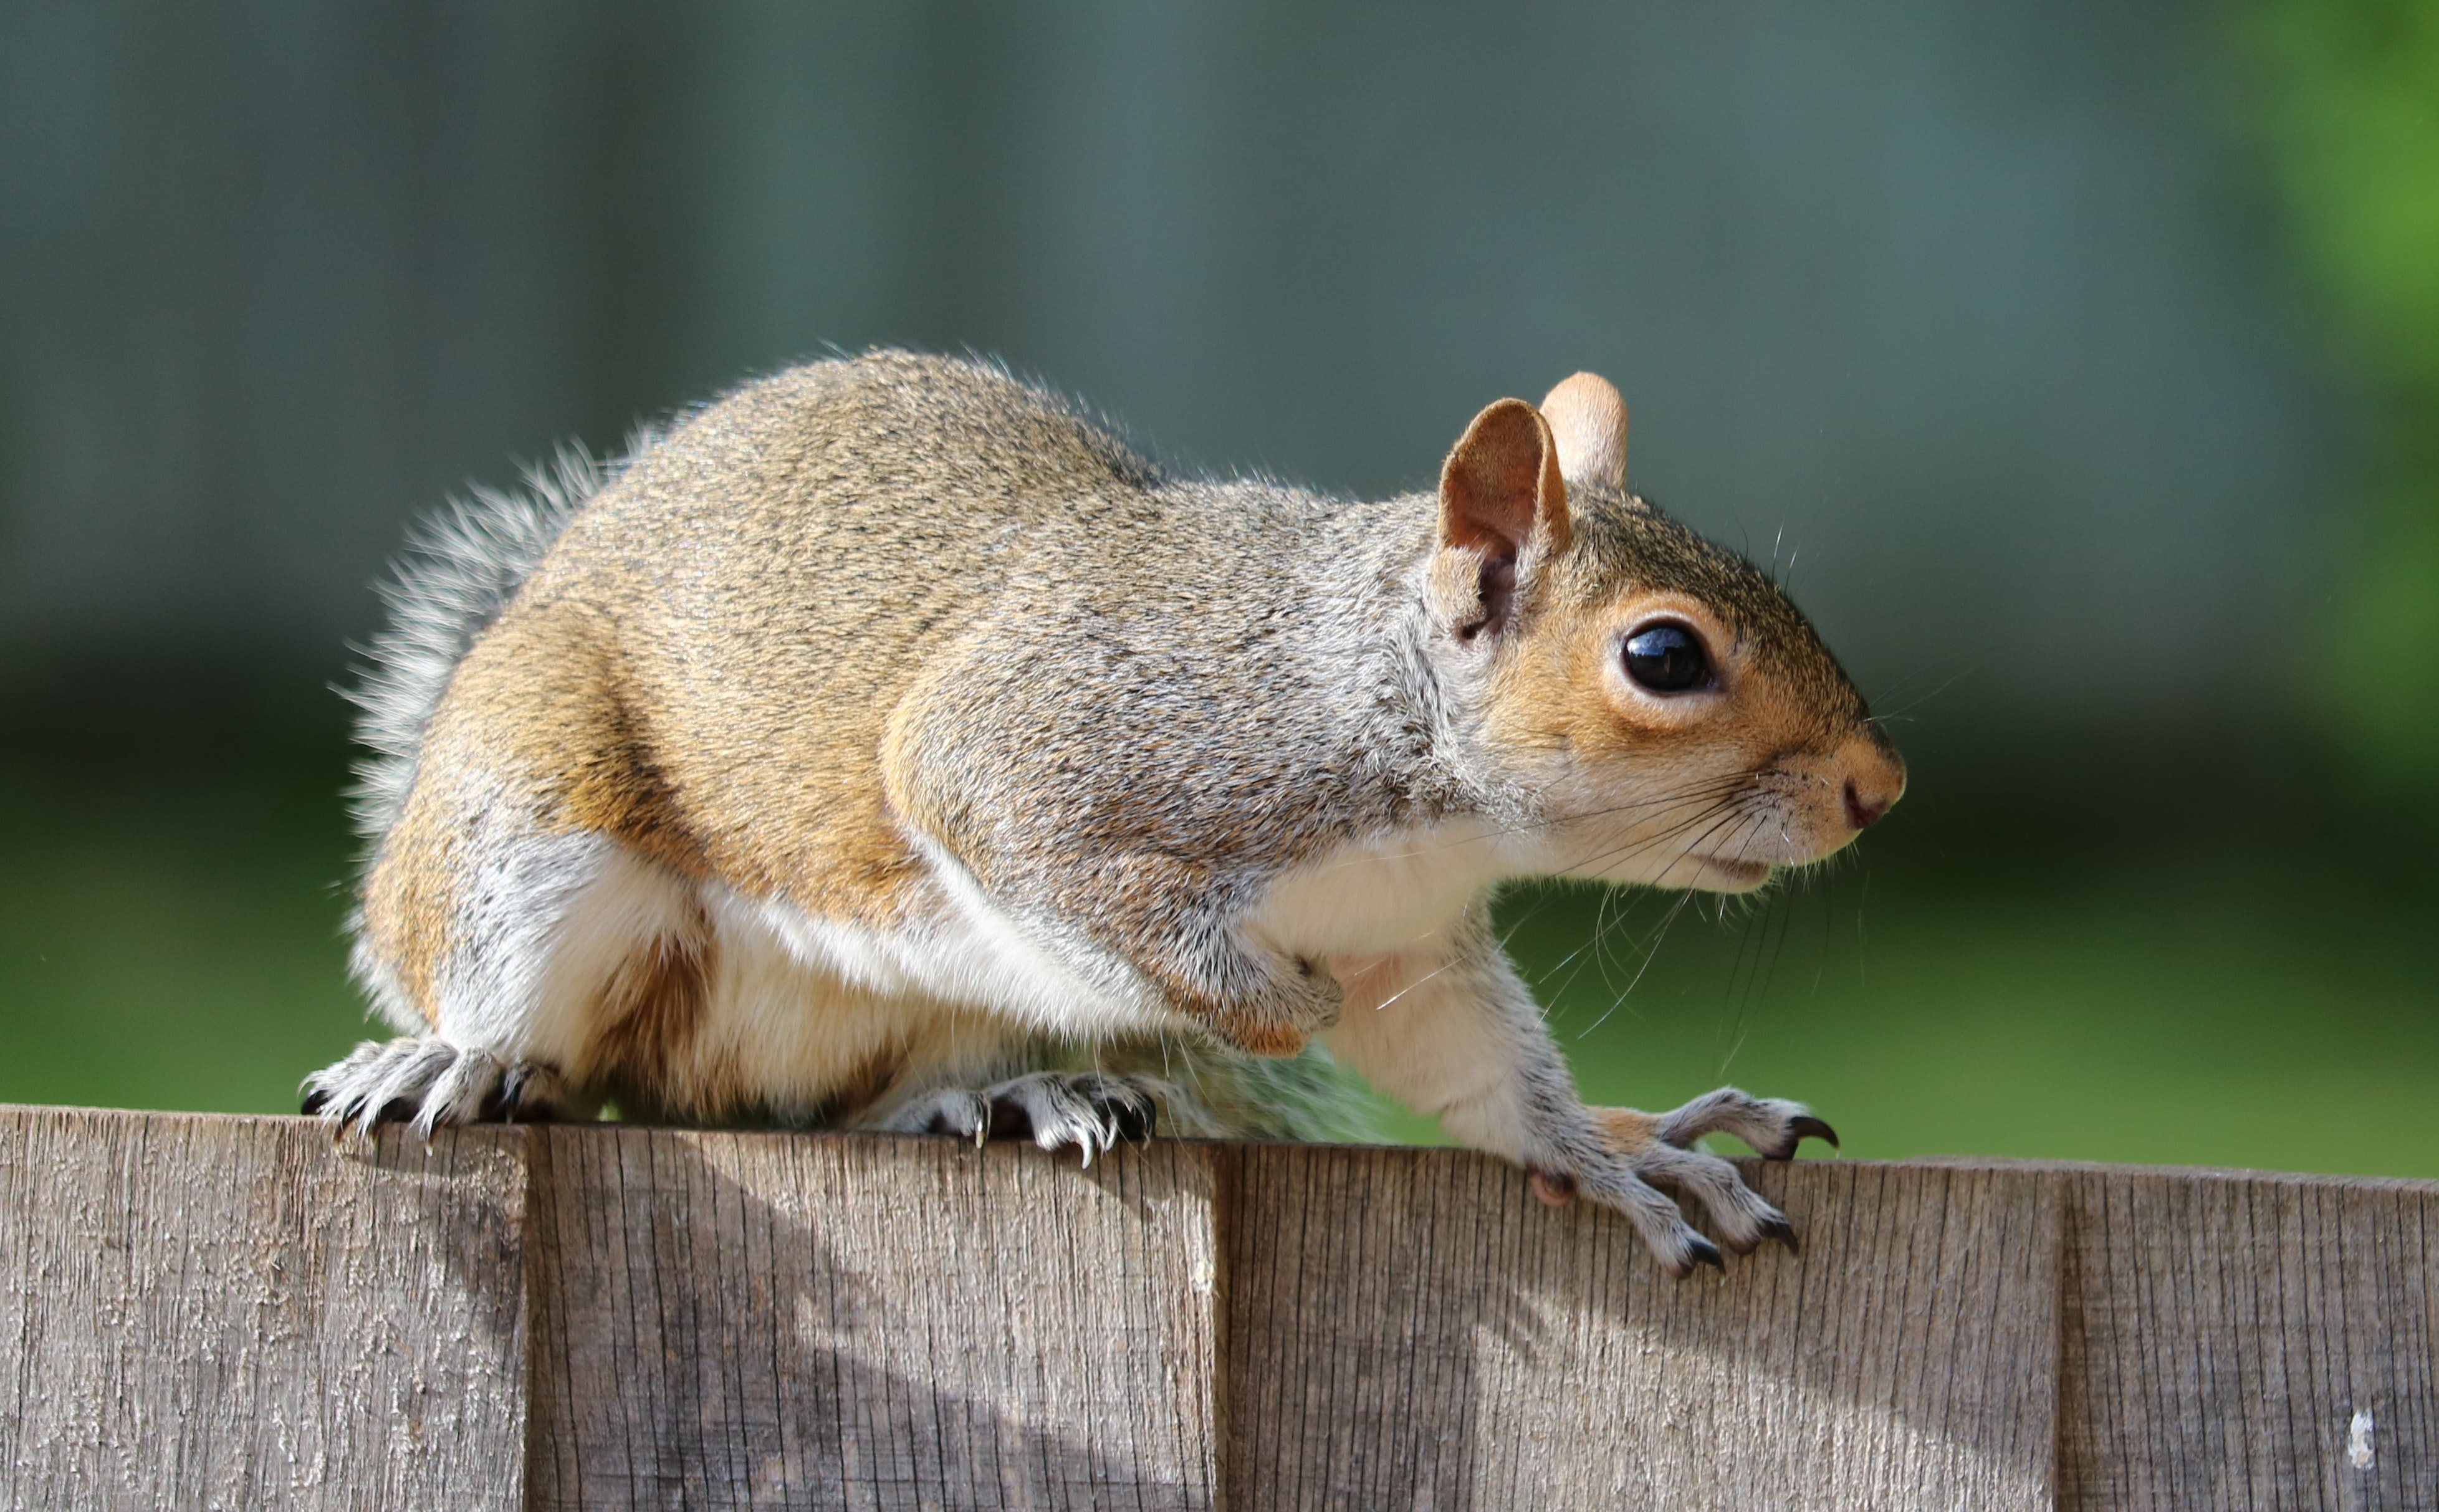 Study: Squirrels Eavesdrop On Birds To Stay Safe, Avoid